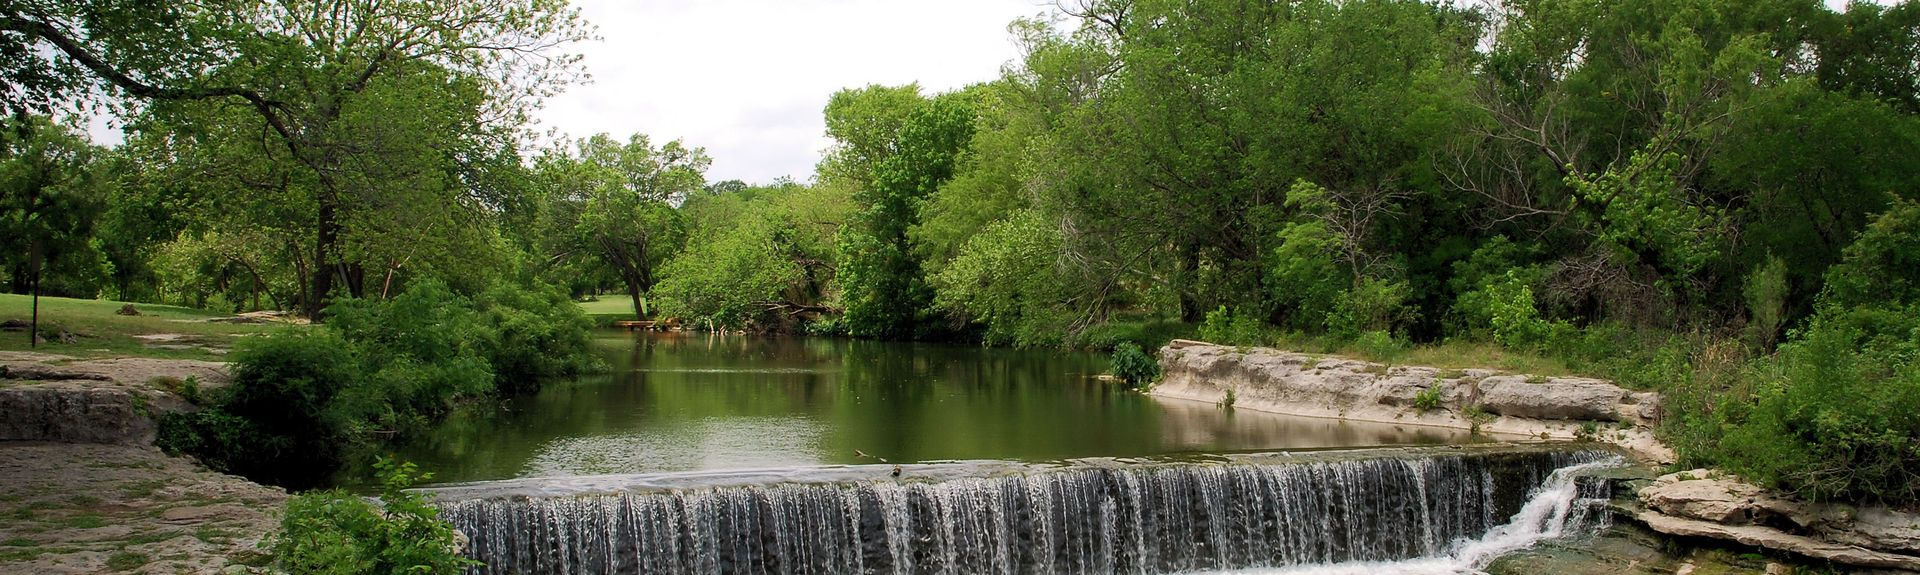 Round Rock, Texas, Estados Unidos